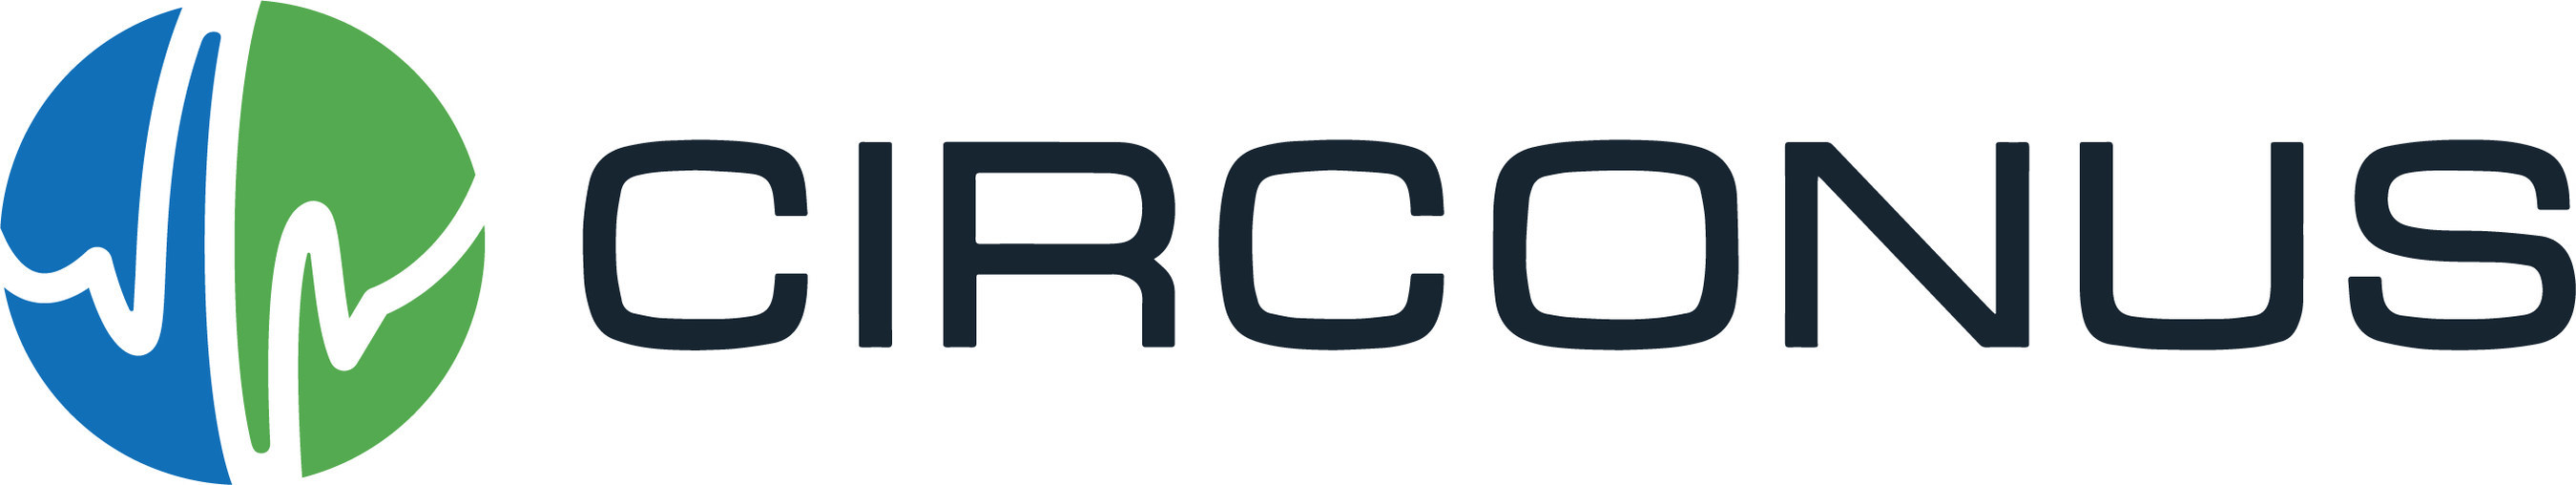 Circonus, the scalable monitoring platform, launches Hi-Def visualization capabilities. A two-tiered approach for data collection which enables millisecond resolution for near-term monitoring and scalable rollups for historical analysis.